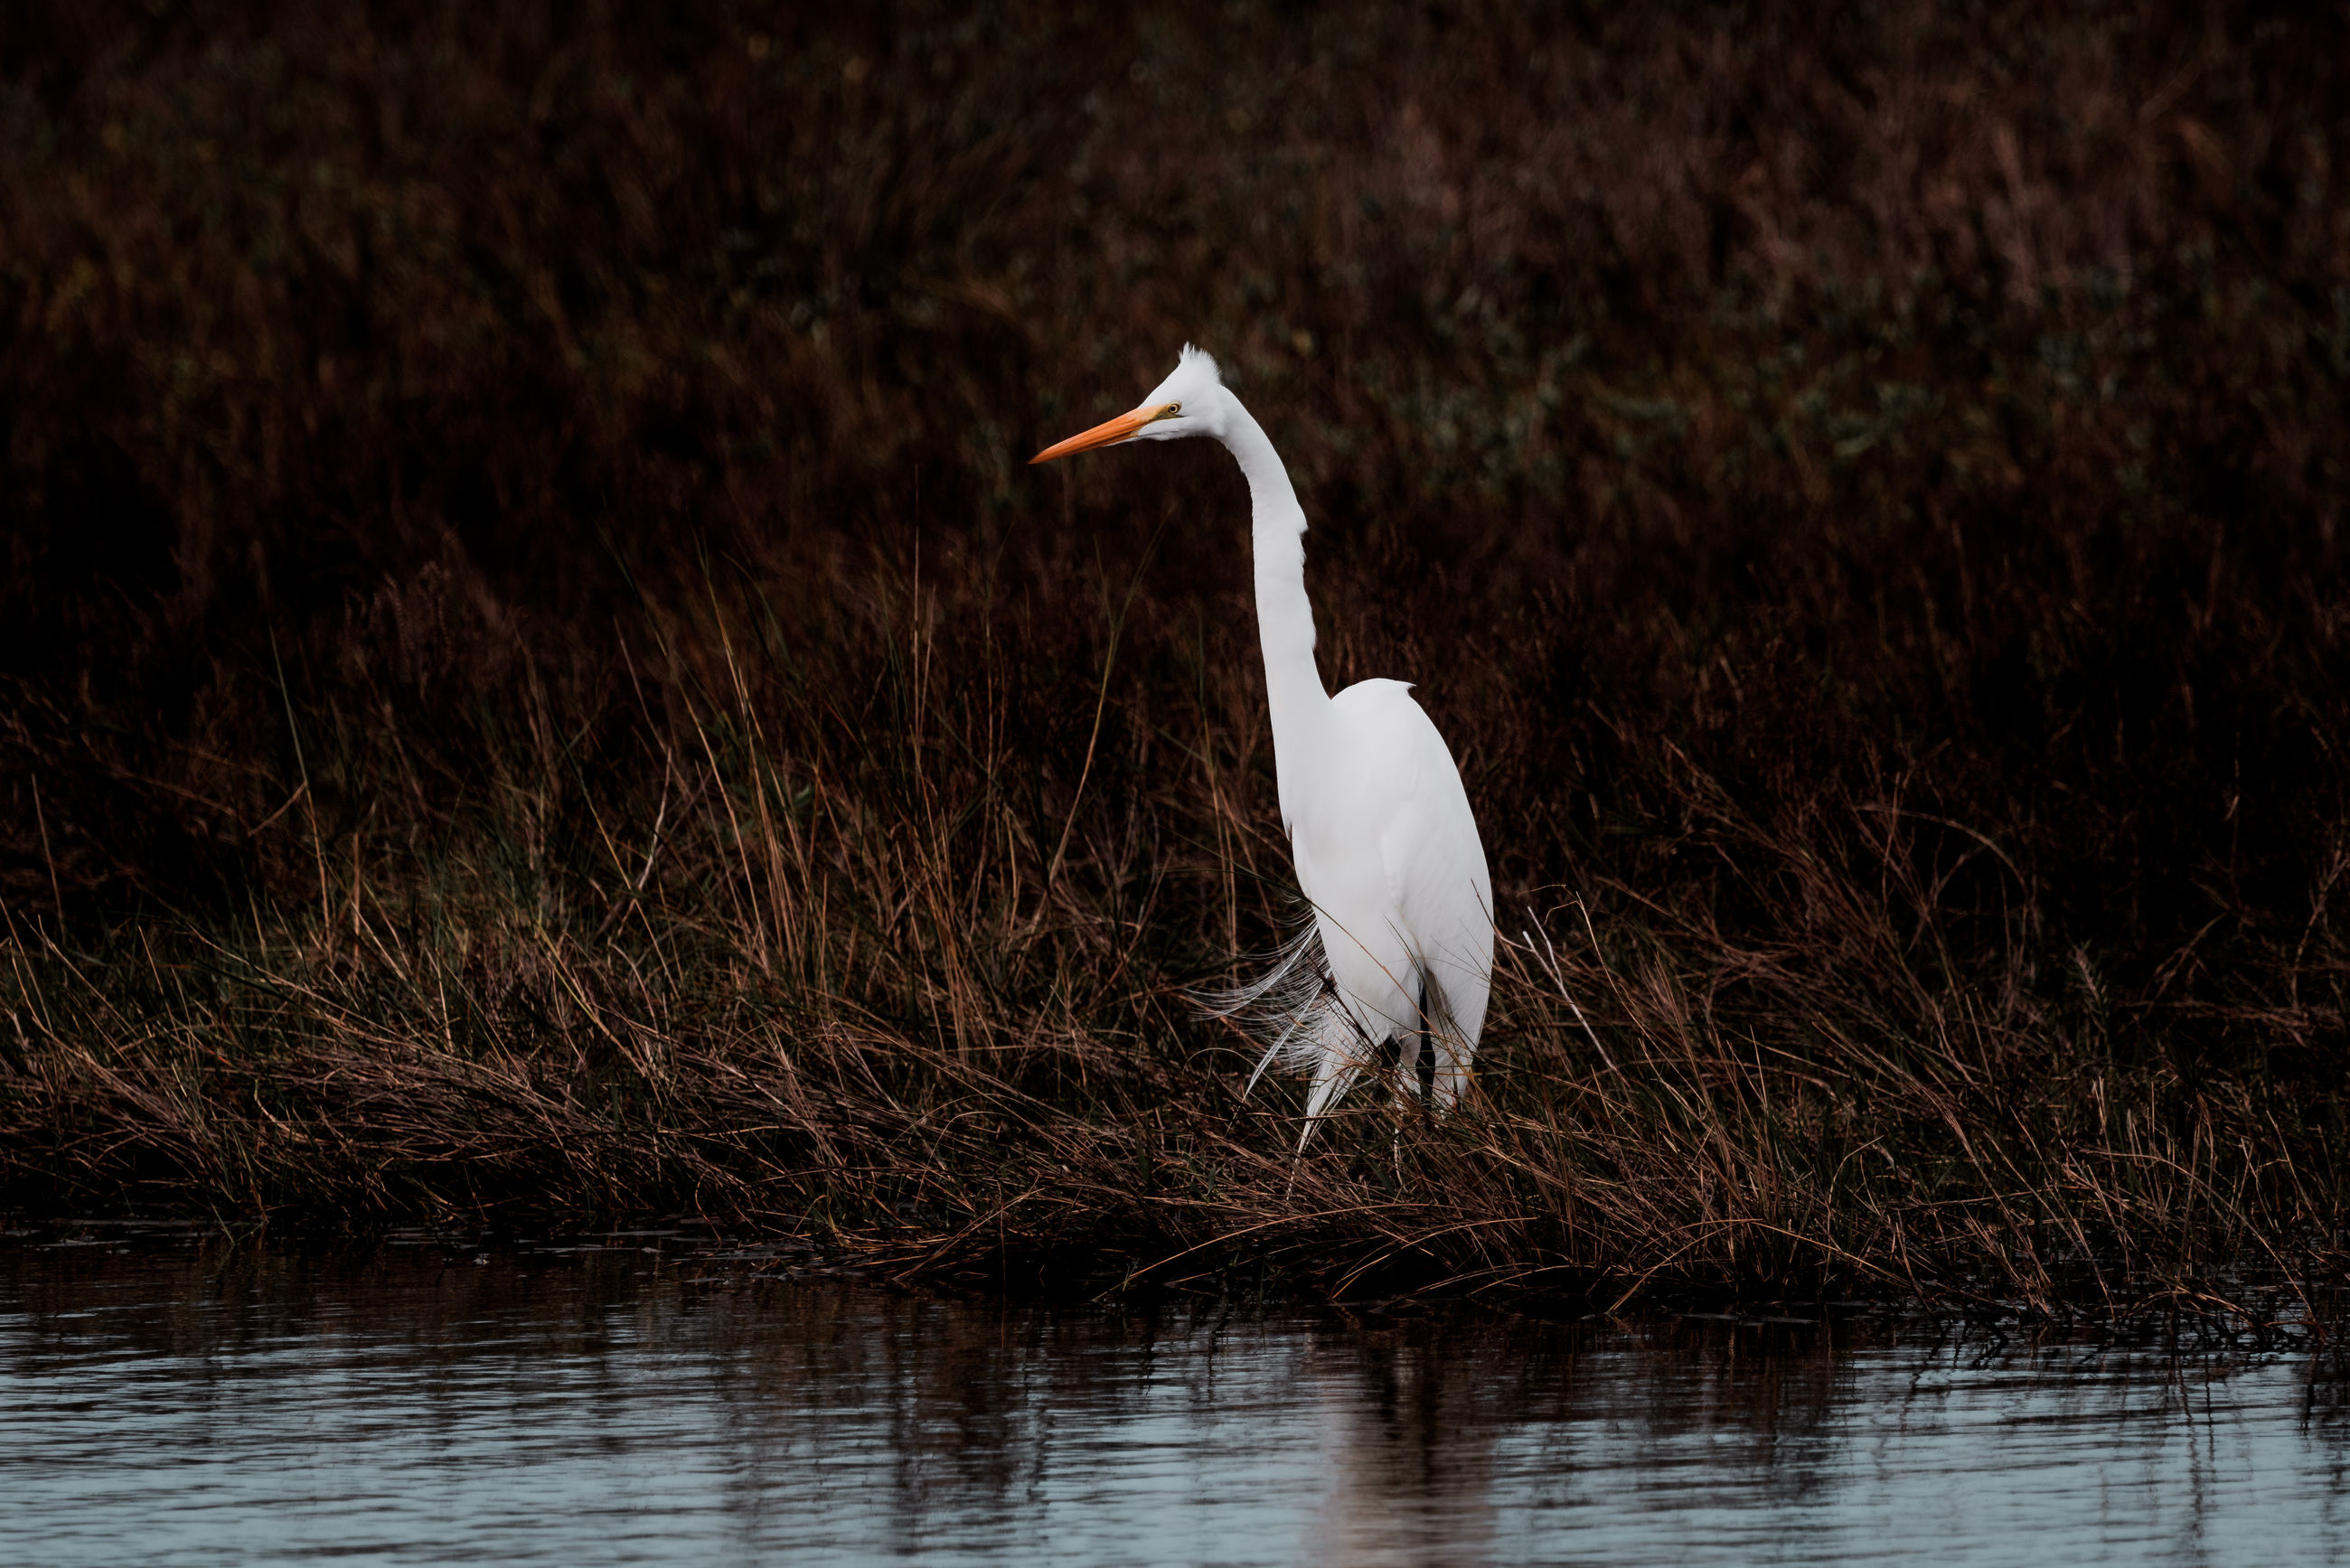 Egret on grass by lake